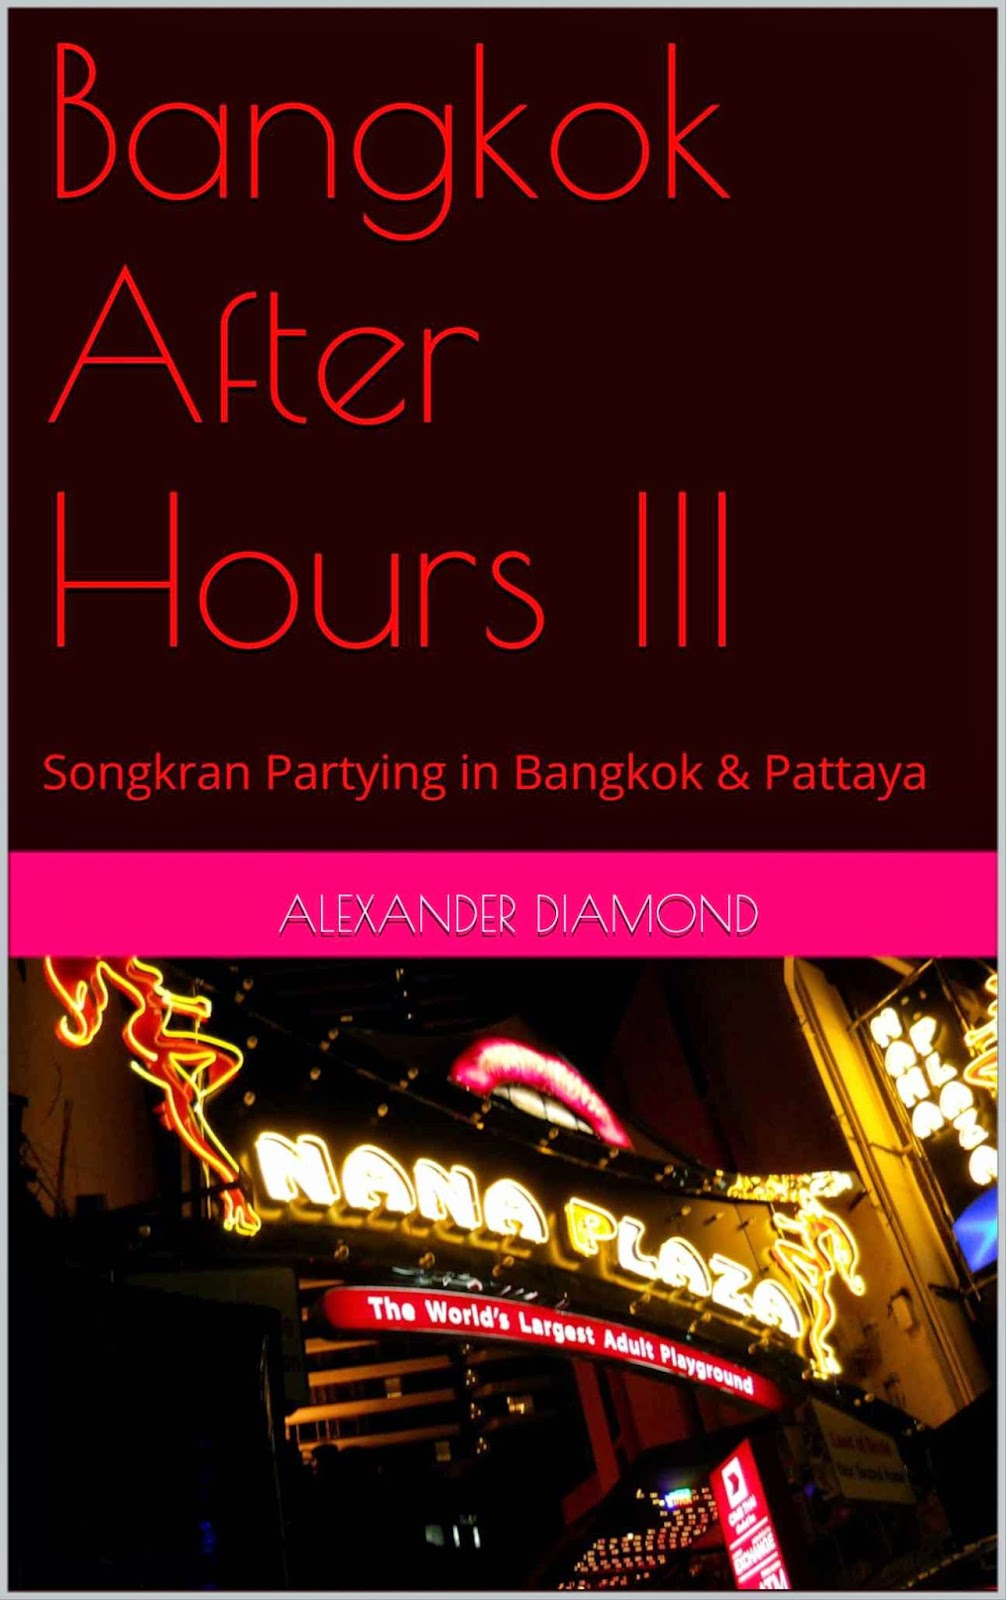 http://www.amazon.com/Bangkok-After-Hours-III-continuing-ebook/dp/B00KR2T8GI/ref=sr_1_3?ie=UTF8&qid=1404485554&sr=8-3&keywords=bangkok+after+hours